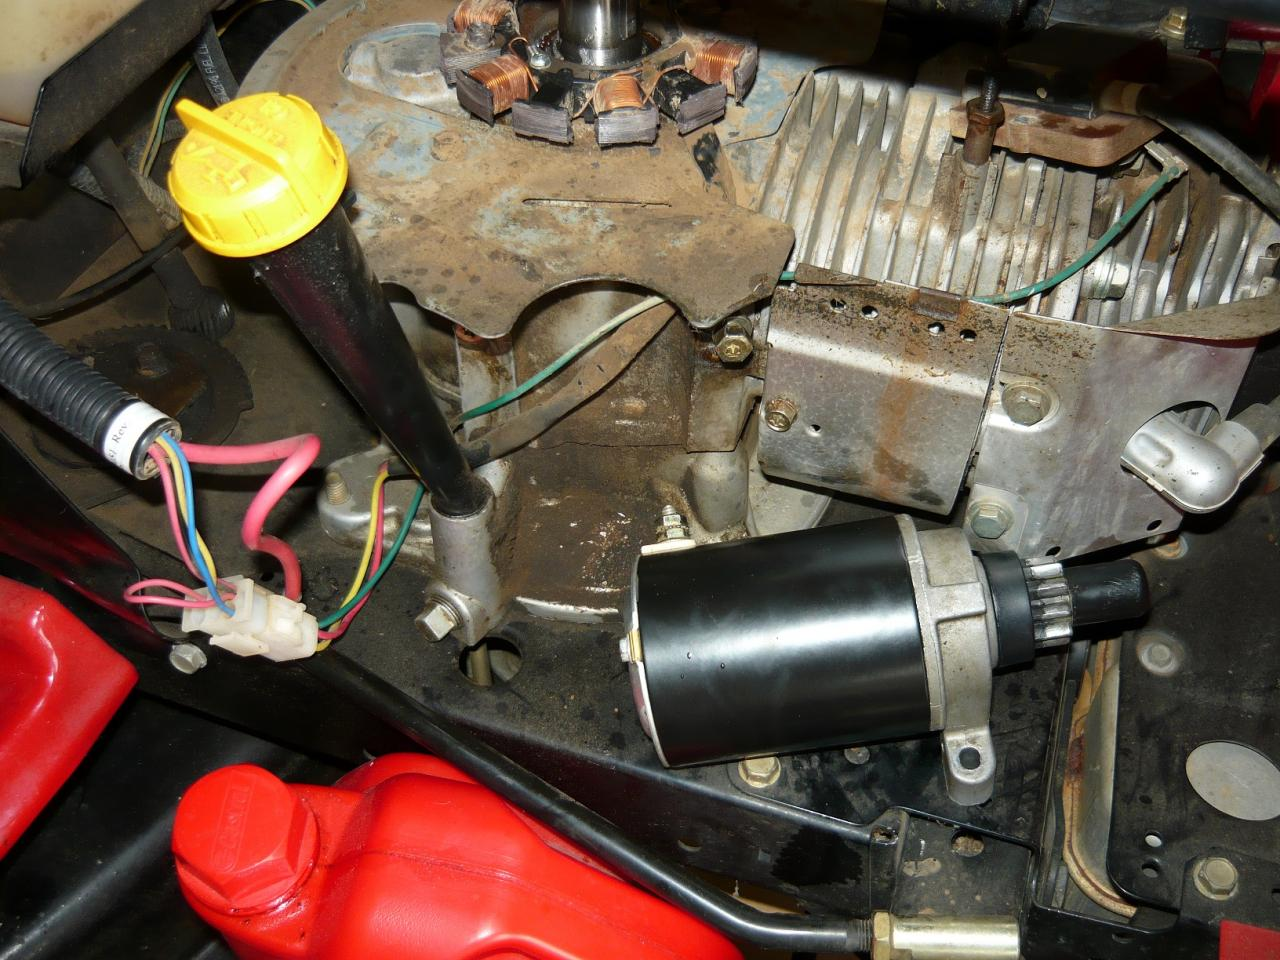 Tecumseh 13 5hp Engine - Flywheel Magnets - OutdoorKing Repair Forum